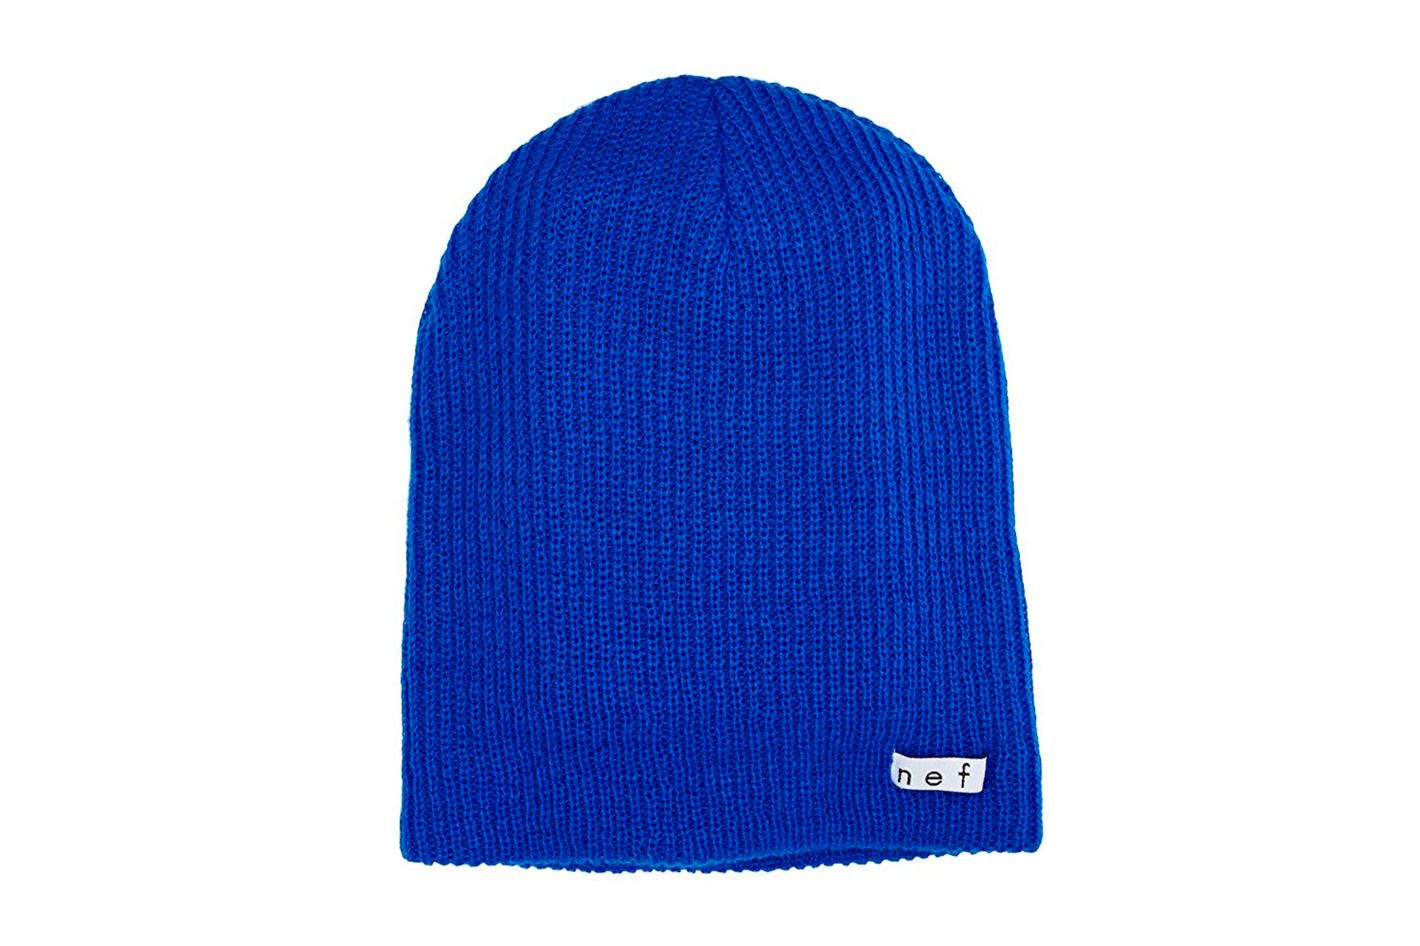 beacd31825c Neff Men s Daily Beanie Hat at Amazon